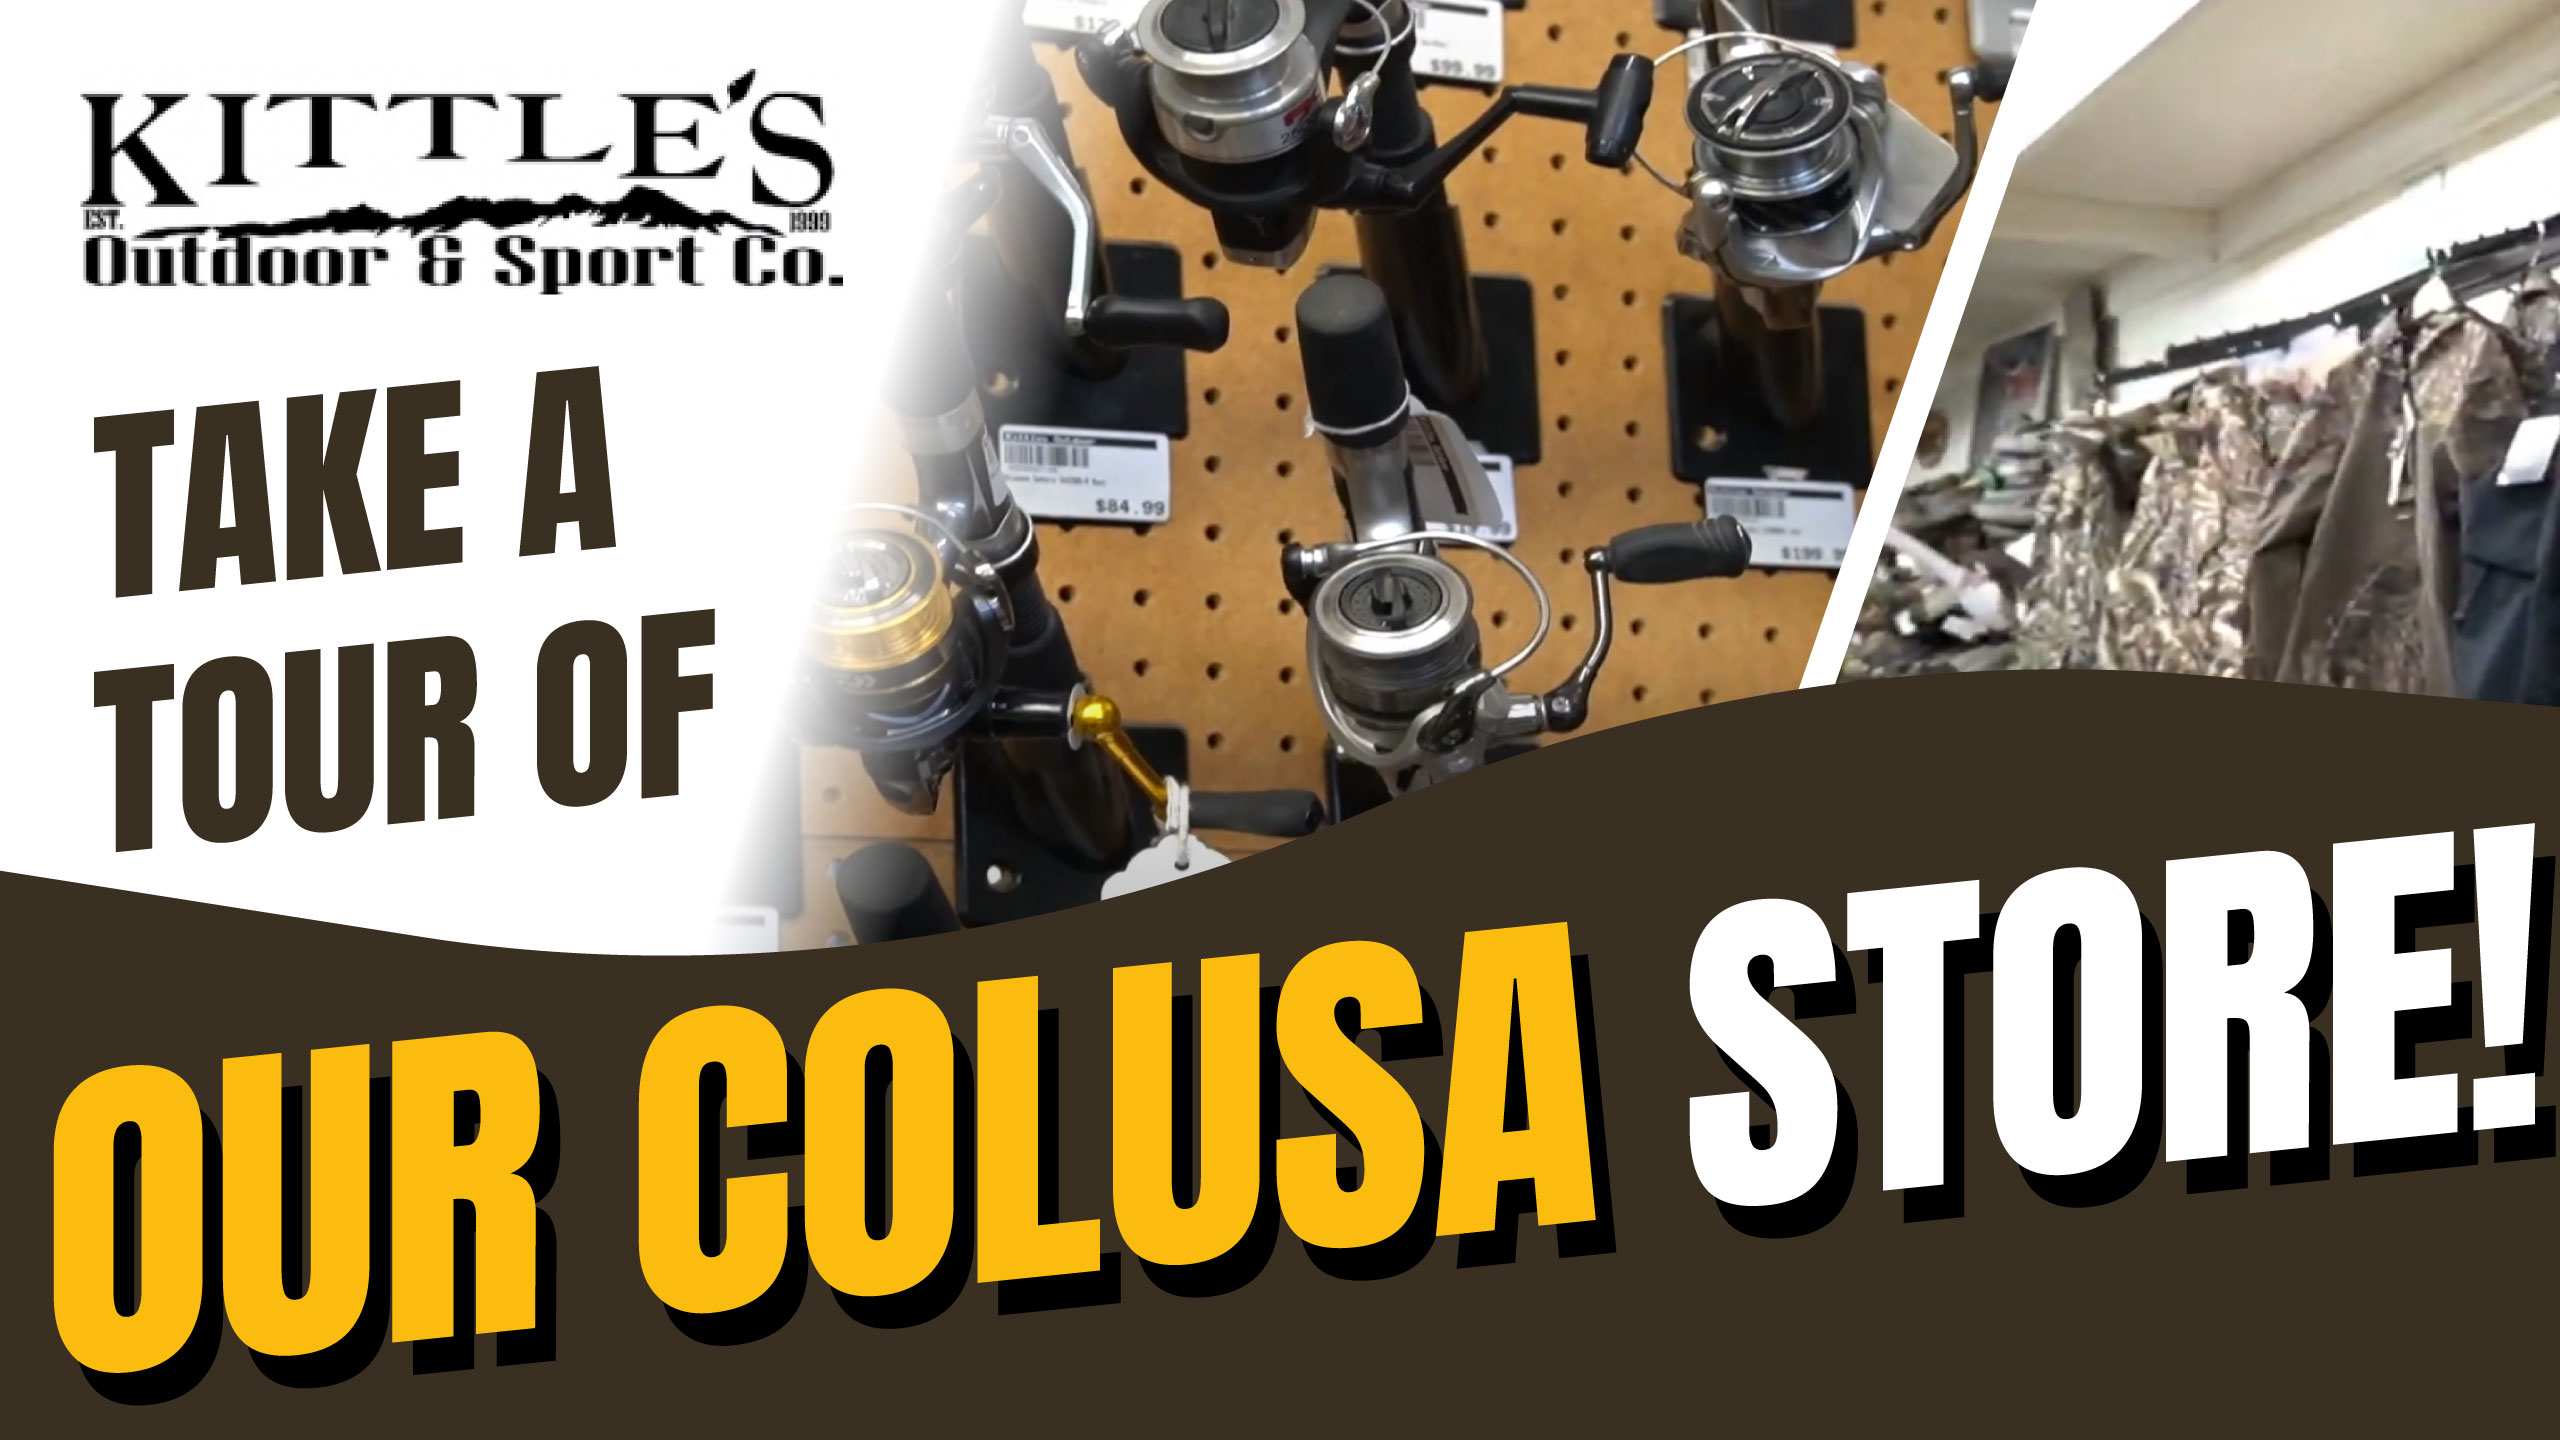 Kittles Colusa Sporting Goods - Best Fishing Hunting Camping Gear CA